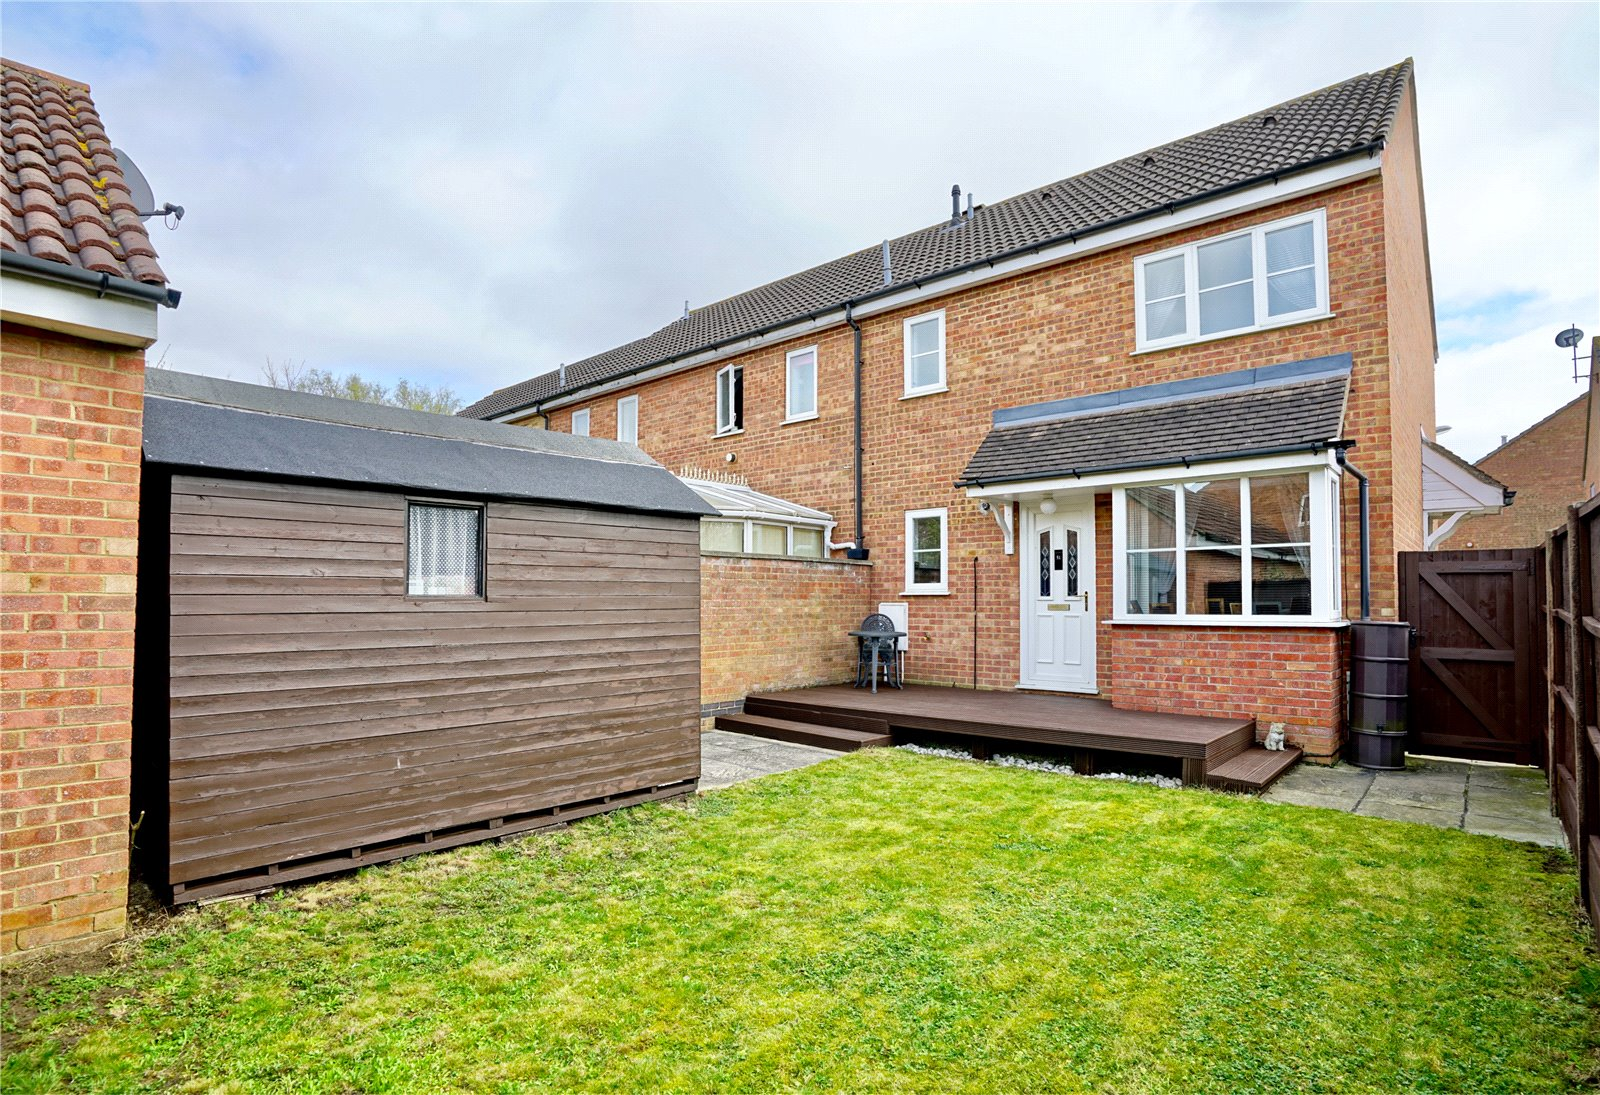 1 bed house for sale in Begwary Close, Eaton Socon - Property Image 1